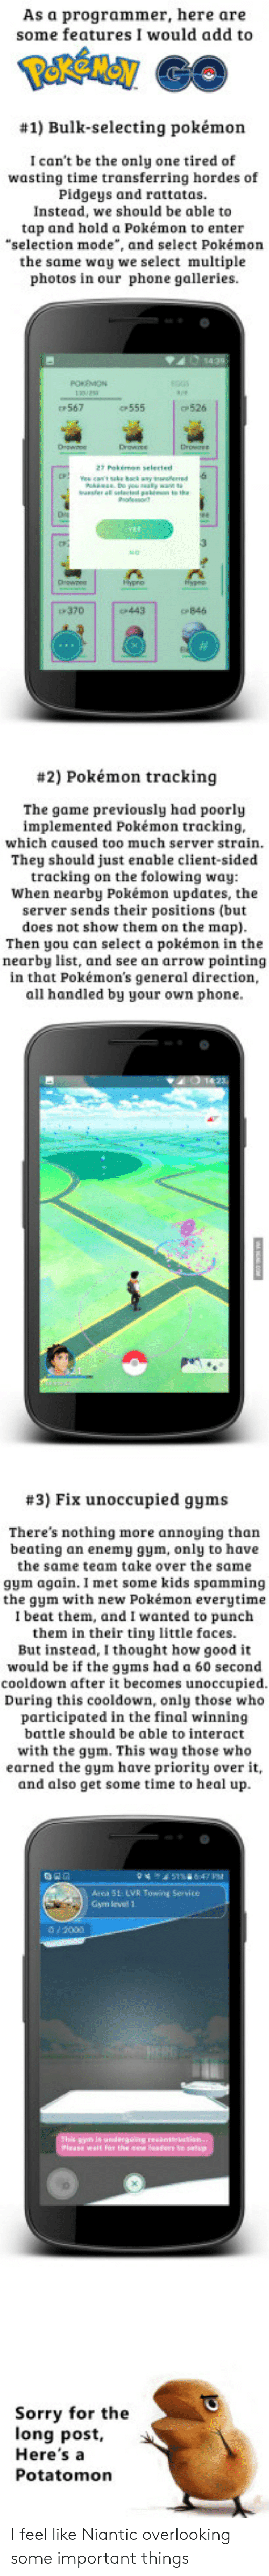 """rattatas: As a programmer, here are  some features I would add to  #1) Bulk-selecting pokémon  I can't be the only one tired of  wasting time transferring hordes of  Pidgeys and rattatas.  Instead, we should be able to  tap and hold a Pokémon to enter  """"selection mode"""", and select Pokémon  the same way we select multiple  photos in our phone galleries.  567  c555  526  P370  443  CP846  #2) Pokémon tracking  The game previously had poorly  implemented Pokémon tracking  which caused too much server strain  They should just enable client-sided  tracking on the folowing way  When nearby Pokémon updates, the  server sends their positions (but  does not show them on the map)  Then you can select a pokémon in the  nearby list, and see an arrow pointing  in that Pokémon's general direction,  all handled by your own phone  #3) Fix unoccupied gyms  There's nothing more annoying than  beating an enemy gym, only to have  the same team take over the same  gym again. I met some kids spamming  the gym with new Pokémon everytime  I beat them, and I wanted to punch  them in their tiny little faces.  But instead, I thought how good it  would be if the gyms had a 60 second  cooldown after it becomes unoccupied  During this cooldown, only those who  participated in the final winning  battle should be able to interact  with the gym. This way those who  earned the gym have priority over it,  and also get some time to heal up  Area 51: LVR Towing Service  Gym level 1  Sorry for the  long post  Here'sa  Potatomon I feel like Niantic overlooking some important things"""